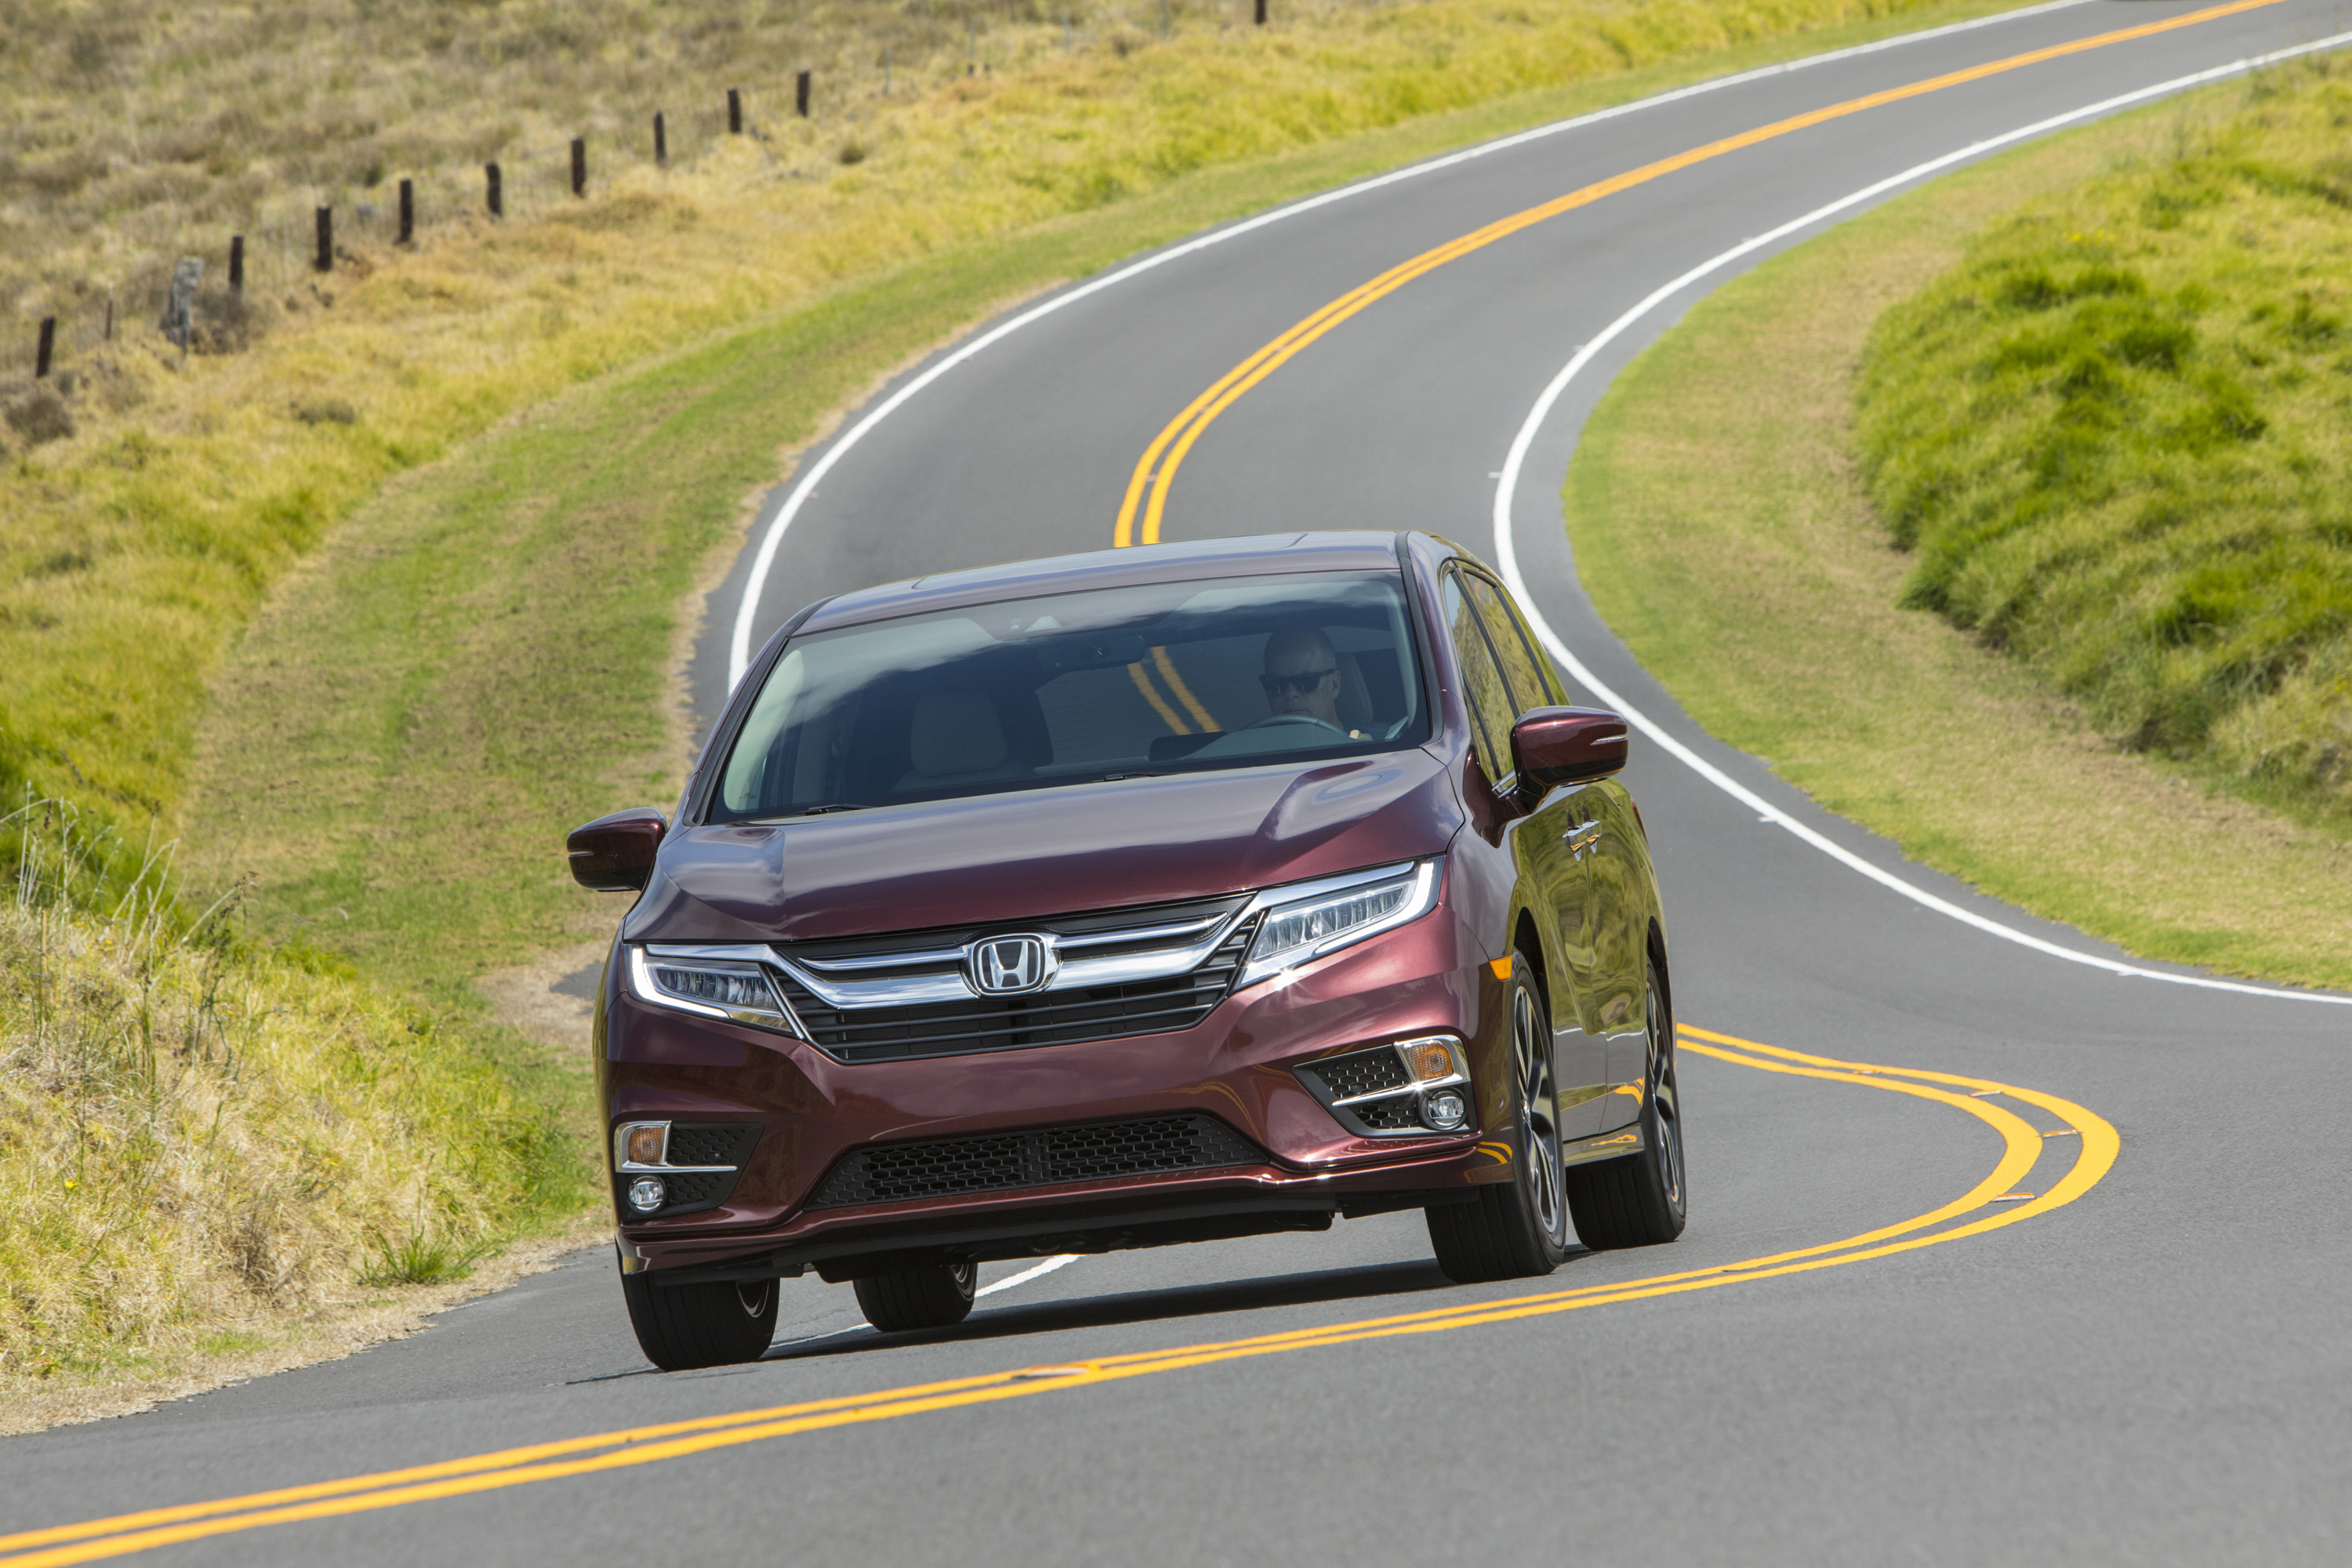 Honda Brings Nothing New To The Odyssey For 2019 Except Higher